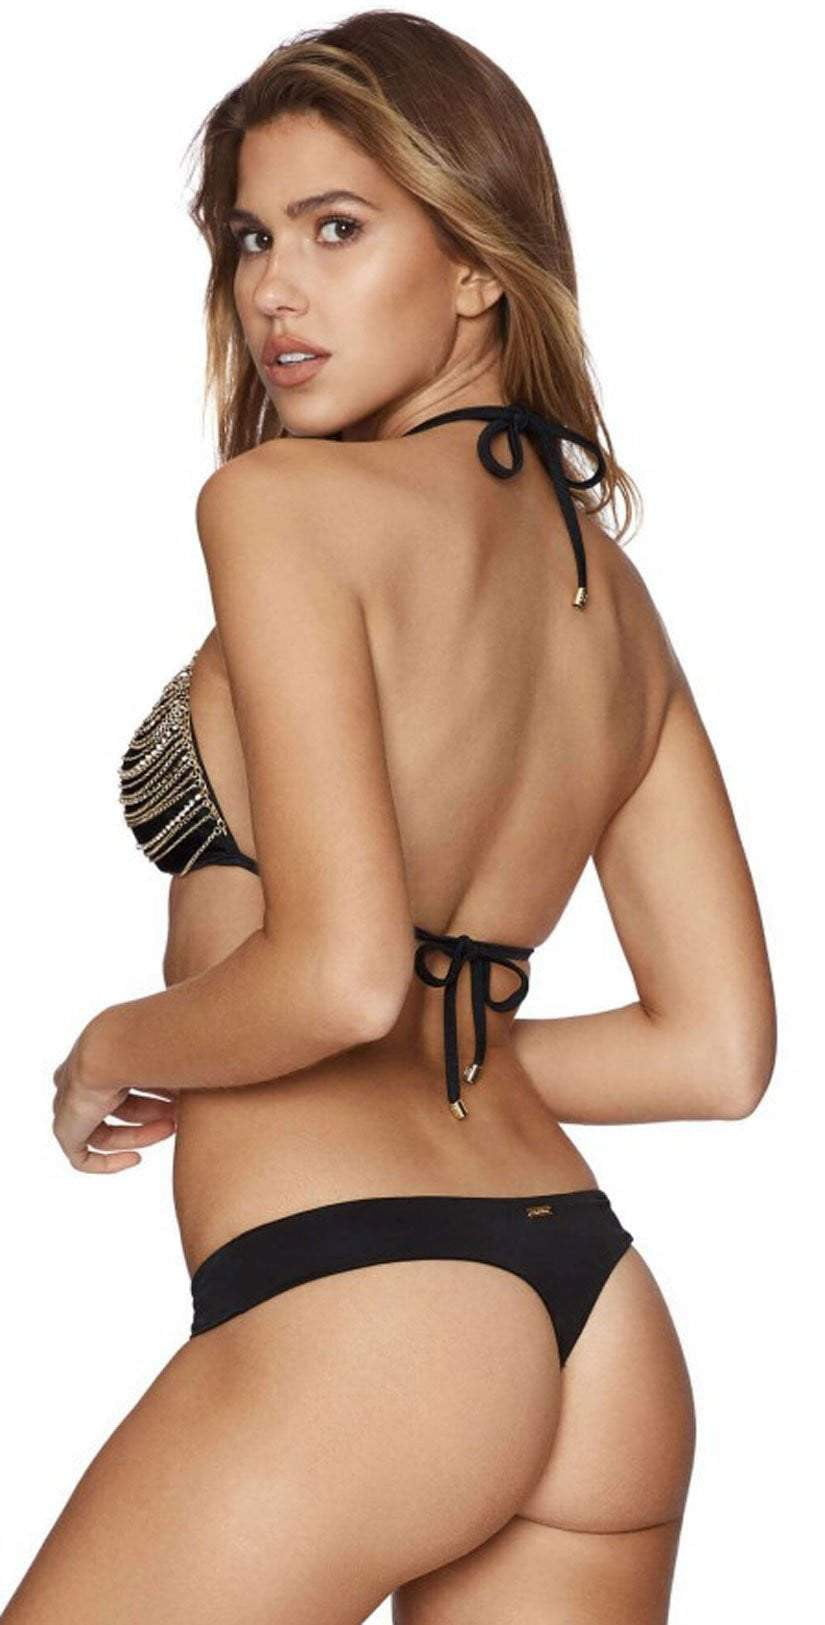 Beach Bunny Basics Skimpy Bottom In Black B1517B0-BLK: